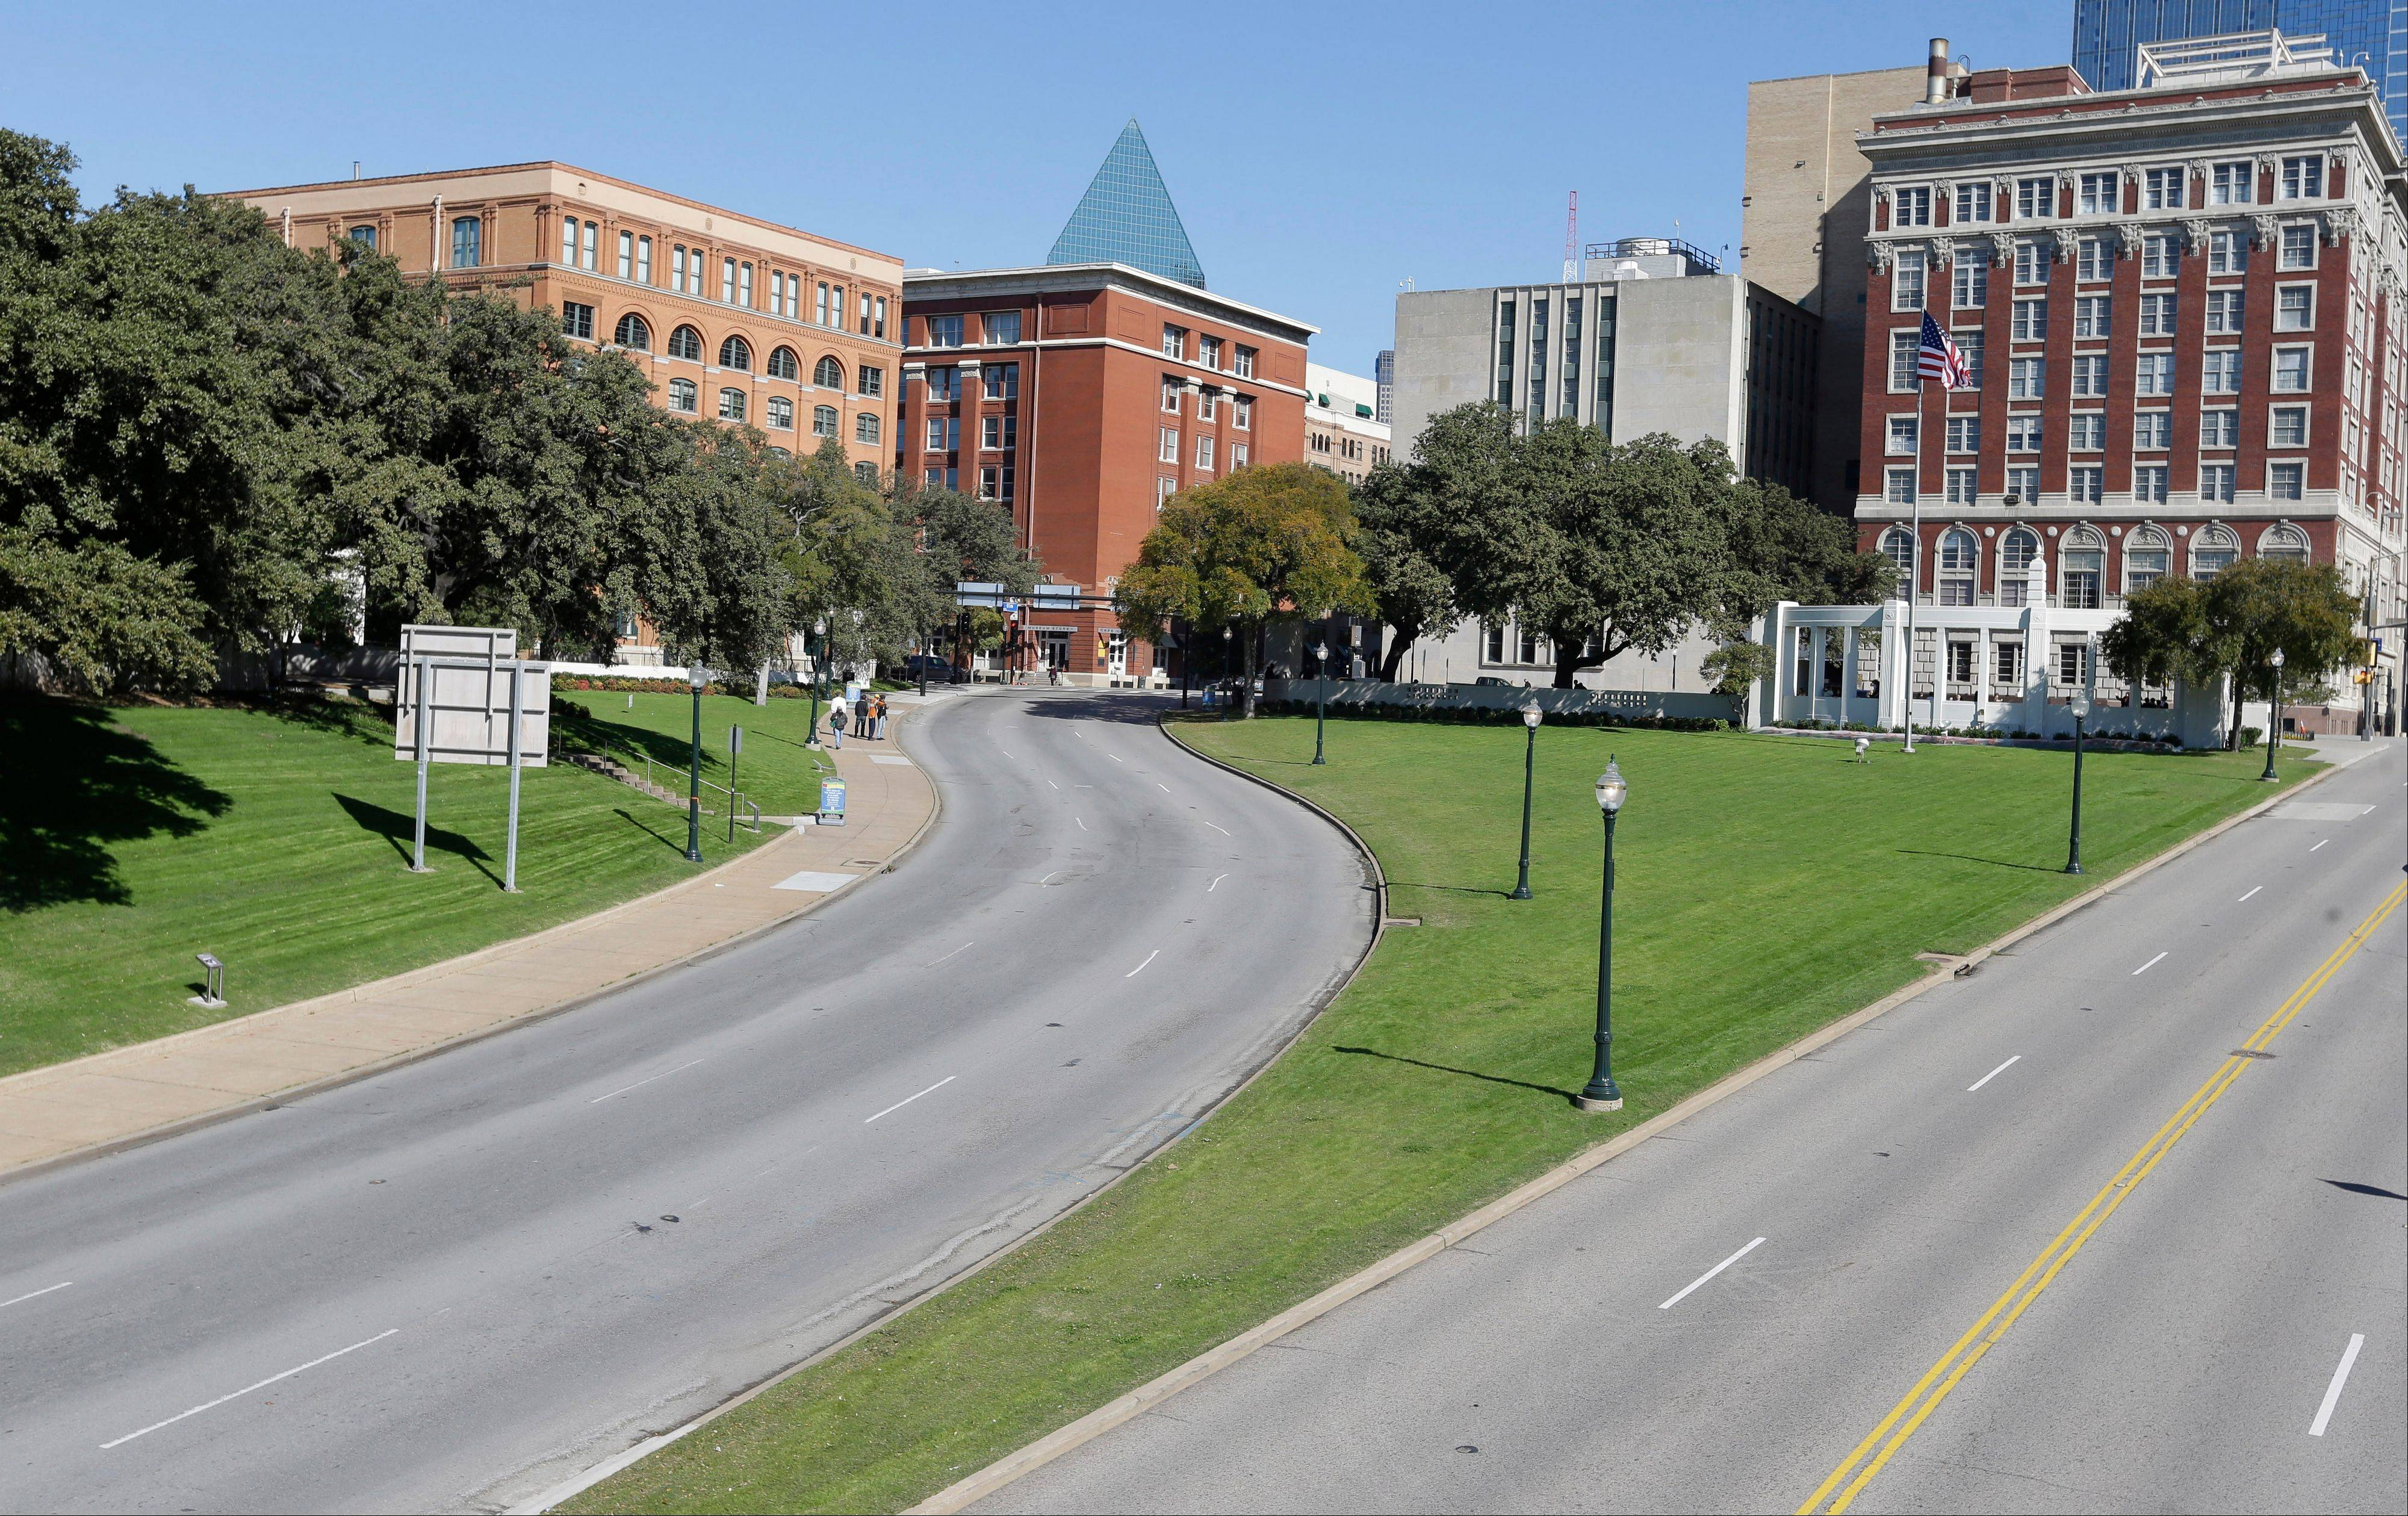 The former Texas School Book Depository building, left, now known as the Sixth Floor Museum, overlooks Dealey Plaza in Dallas. This is where Lee Harvey Oswald fired from, killing President John F. Kennedy on Nov. 22, 1963.